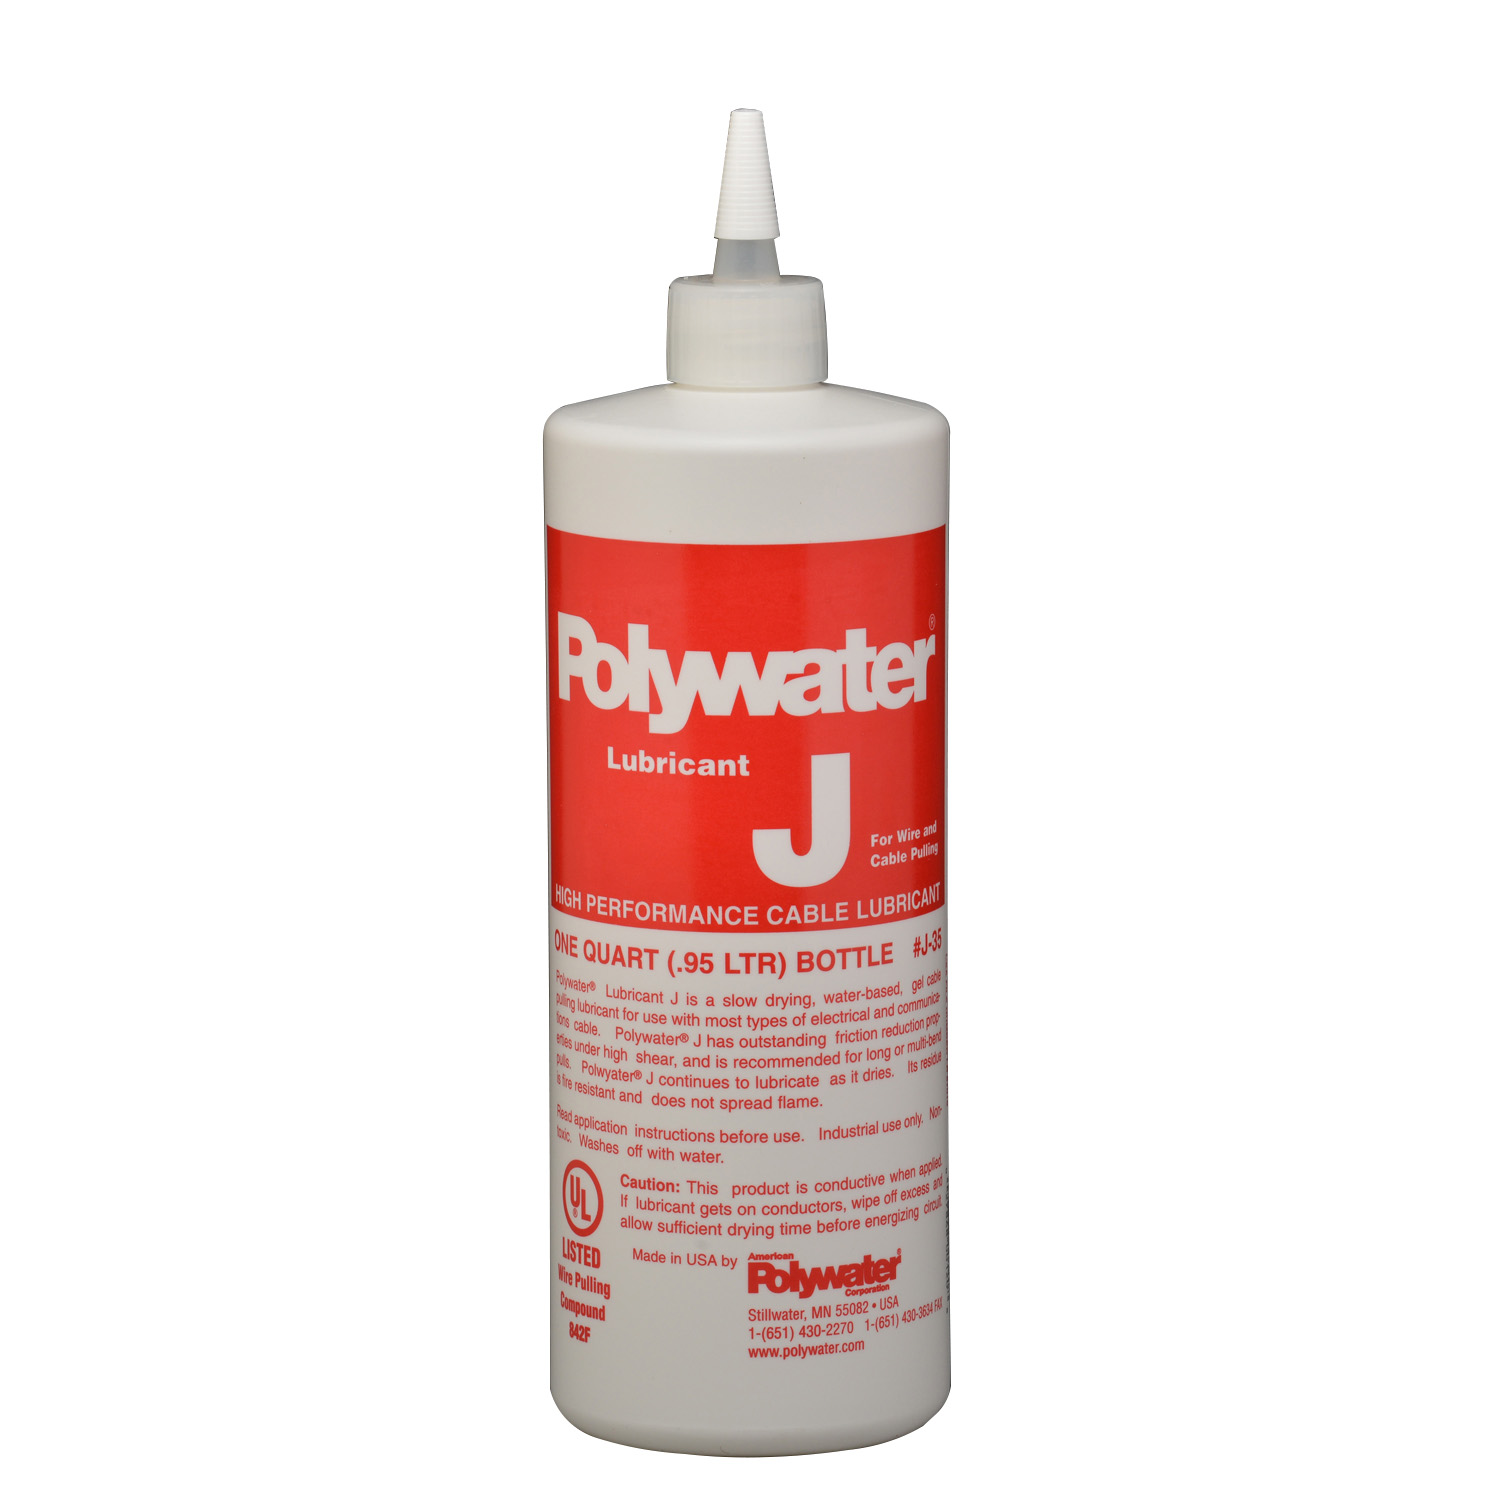 J-35 POLYWATER WIRE LUBRICANT, 1-QUART SQUEEZE BOTTLE